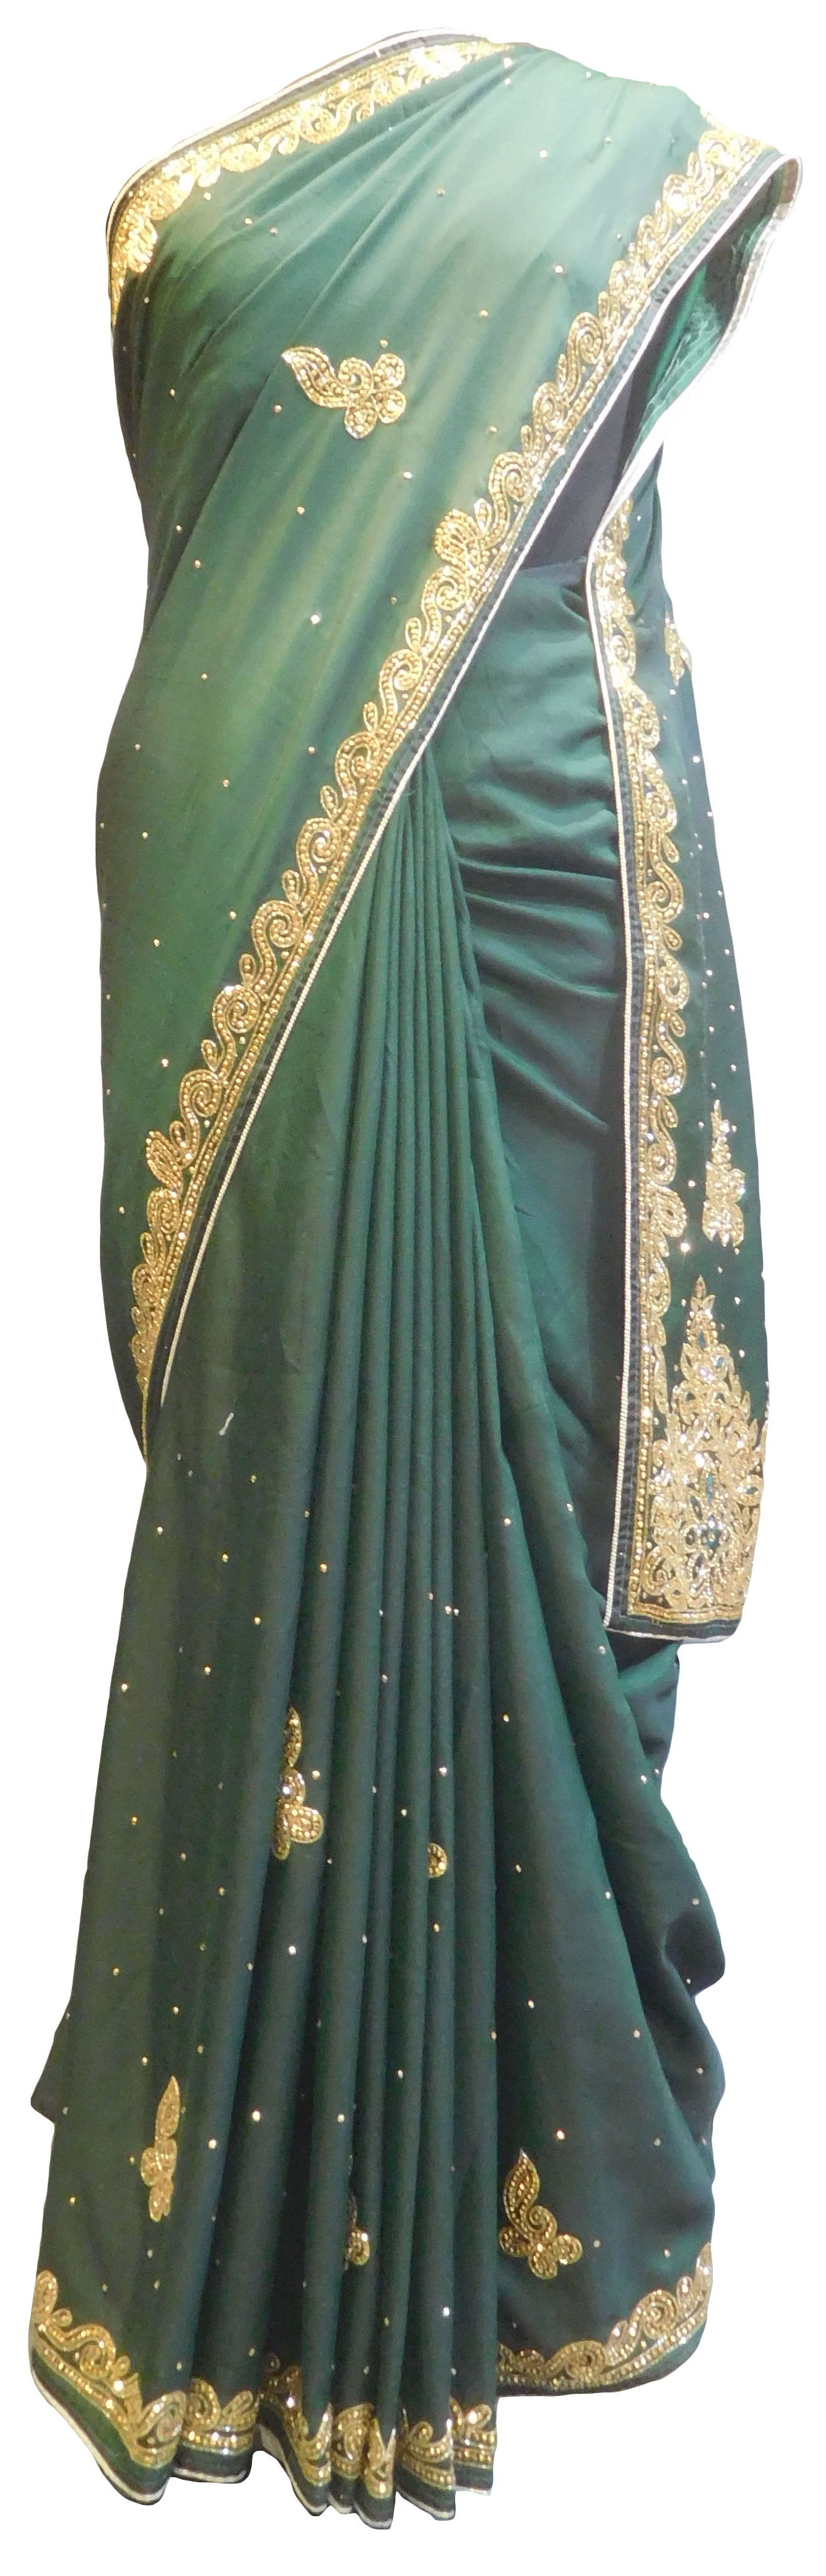 SMSAREE Green Designer Wedding Partywear Satin Silk Stone Thread & Cutdana Hand Embroidery Work Bridal Saree Sari With Blouse Piece E812